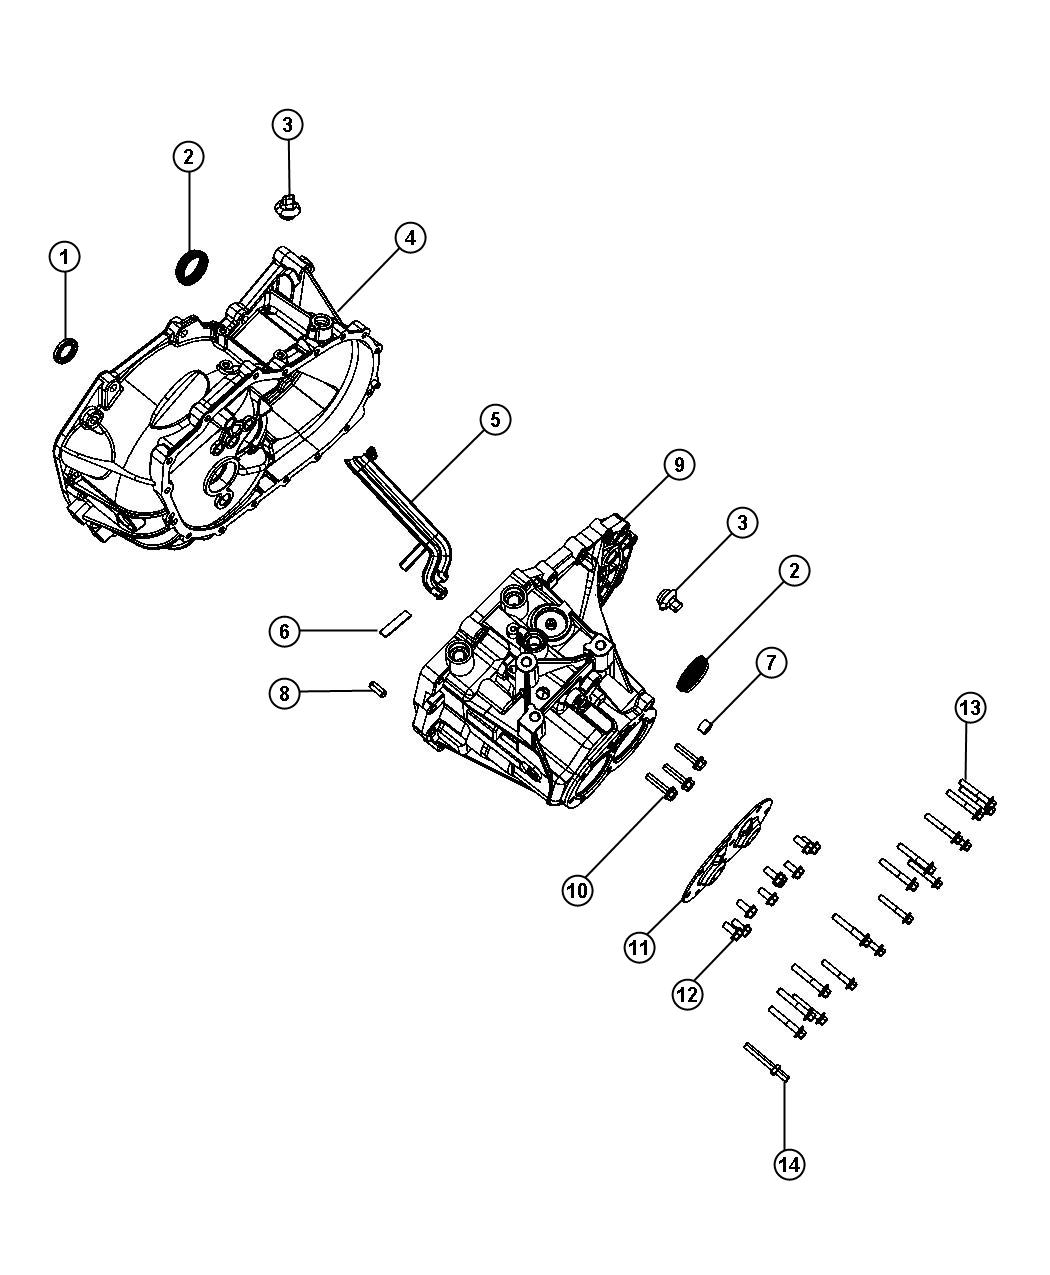 Wiring Diagram For Jeep Patriot 2011 Manual